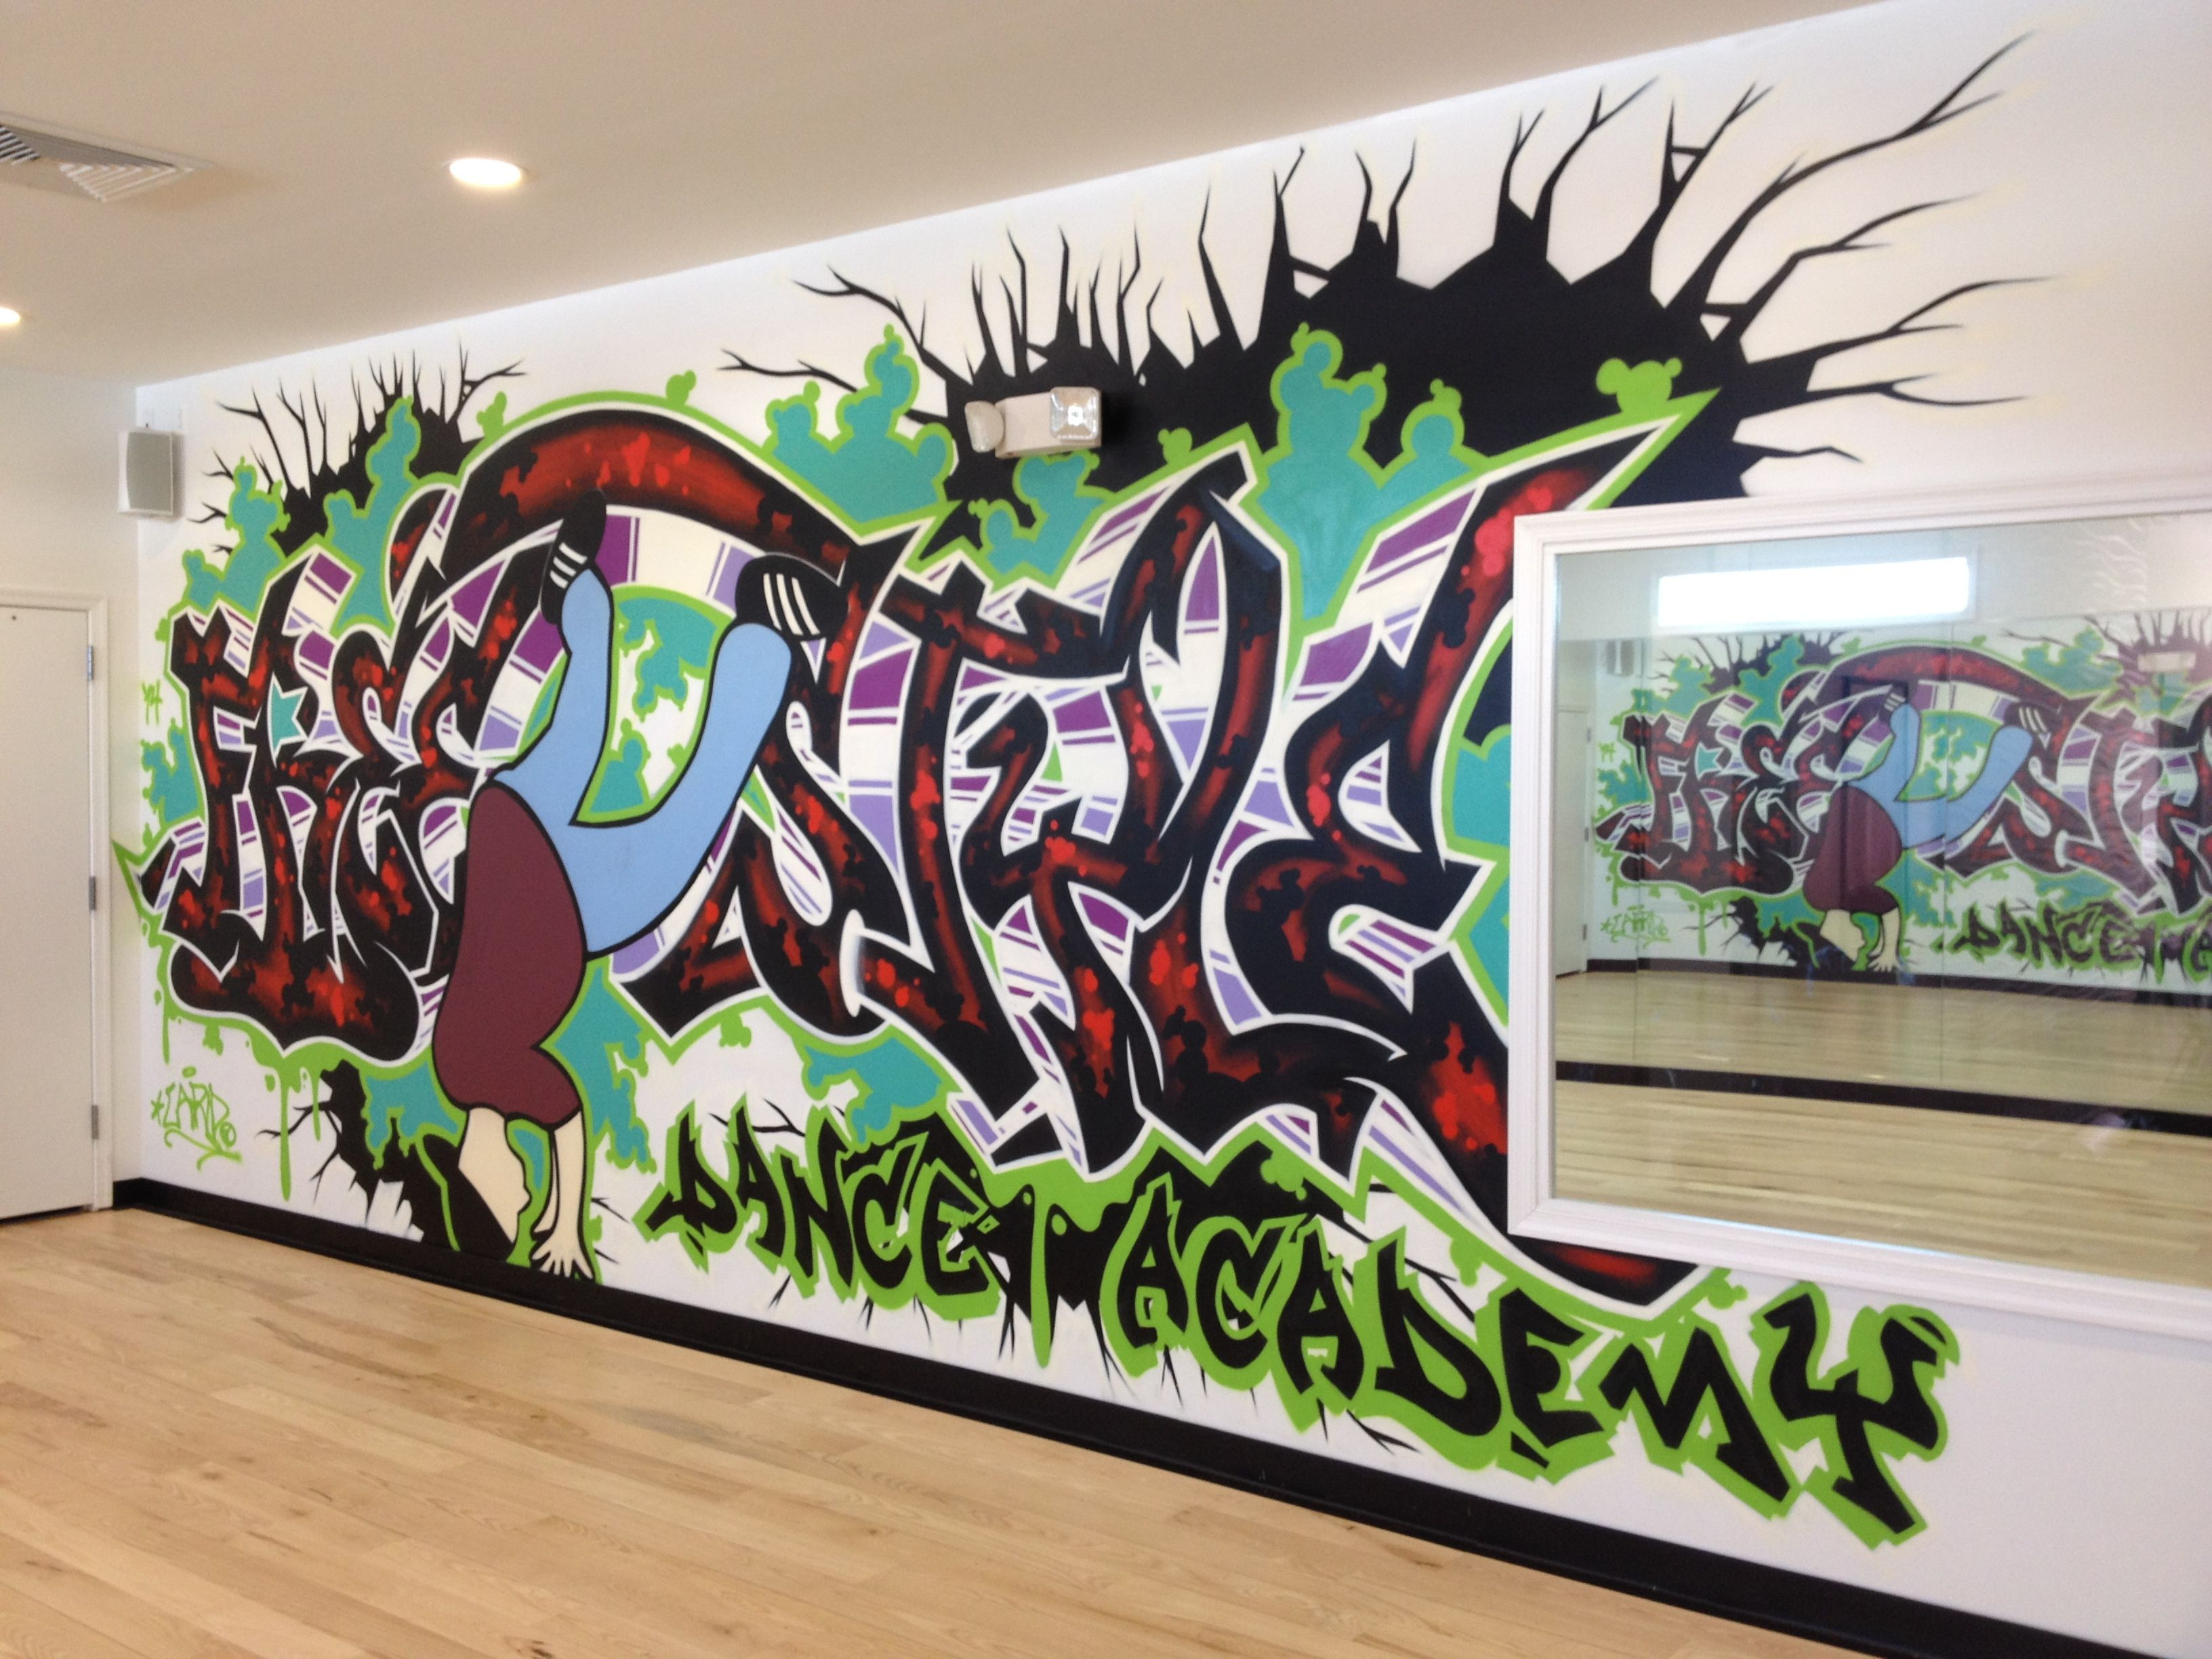 Check Out The Breath Taking Graffiti Work In Studio A